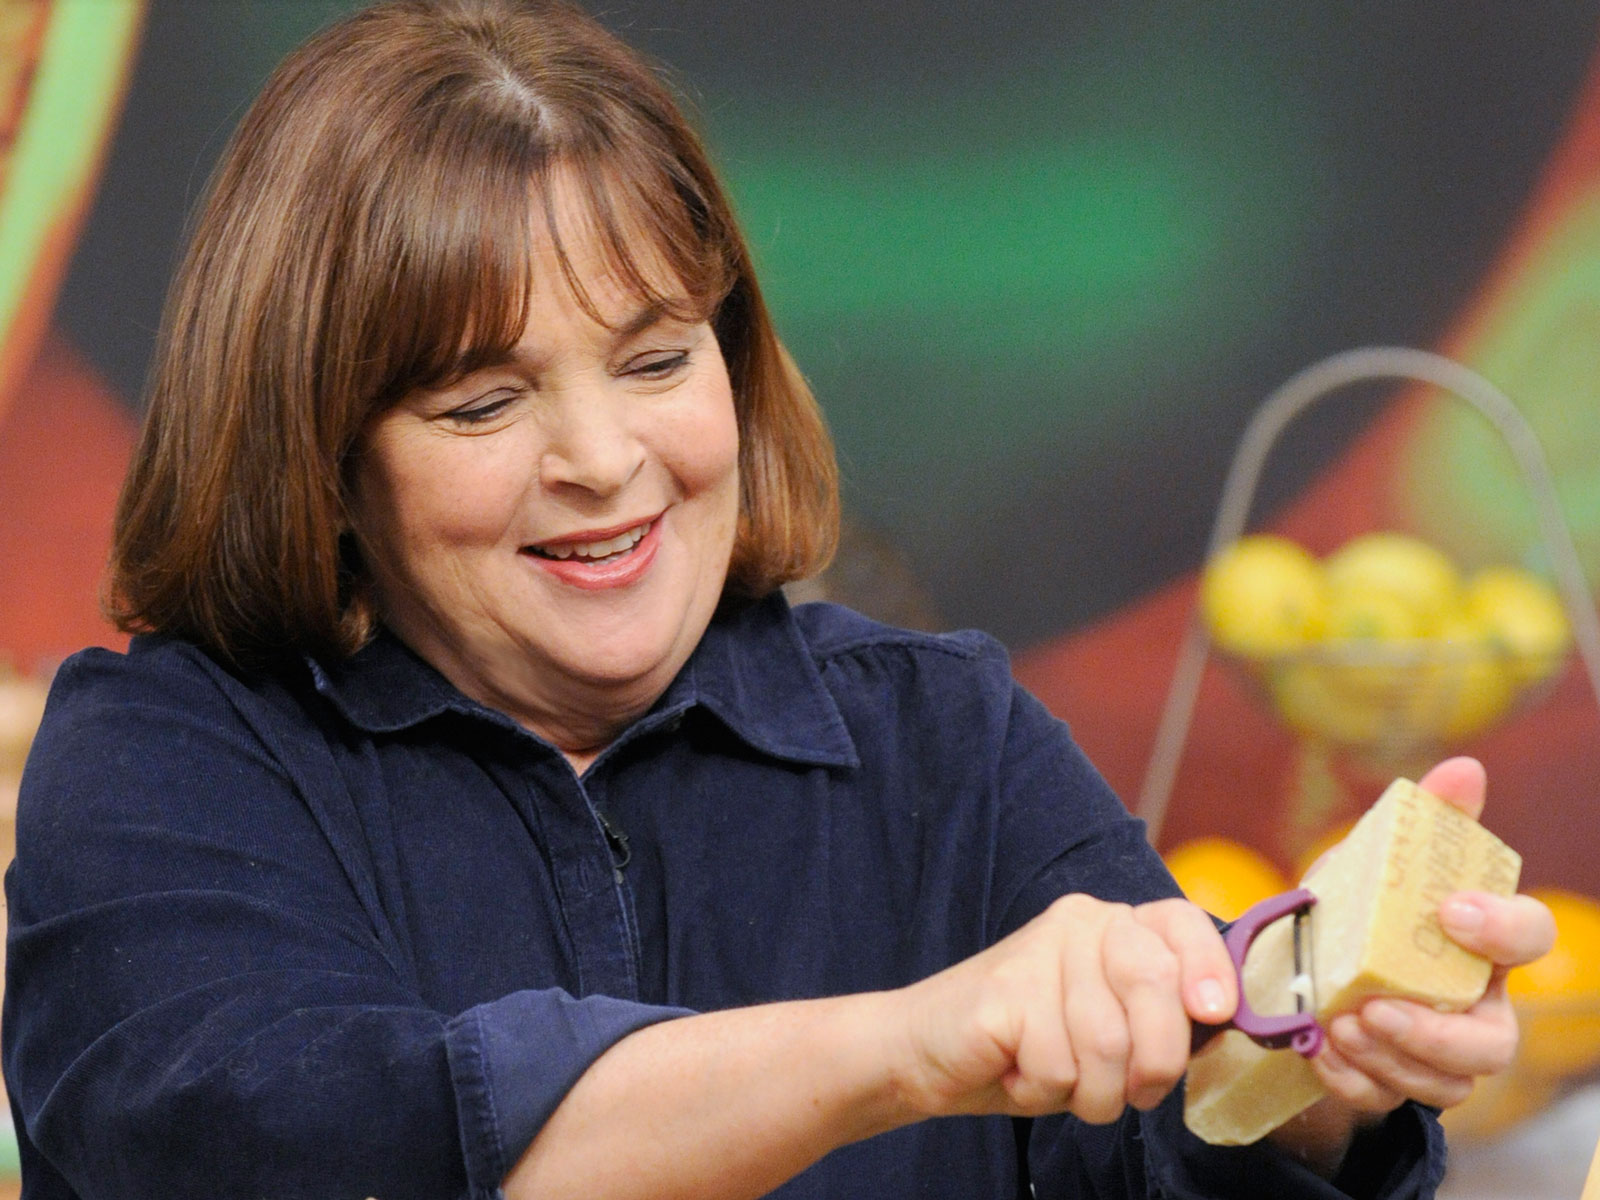 ina-garten-tips-FT-BLOG0418.jpg